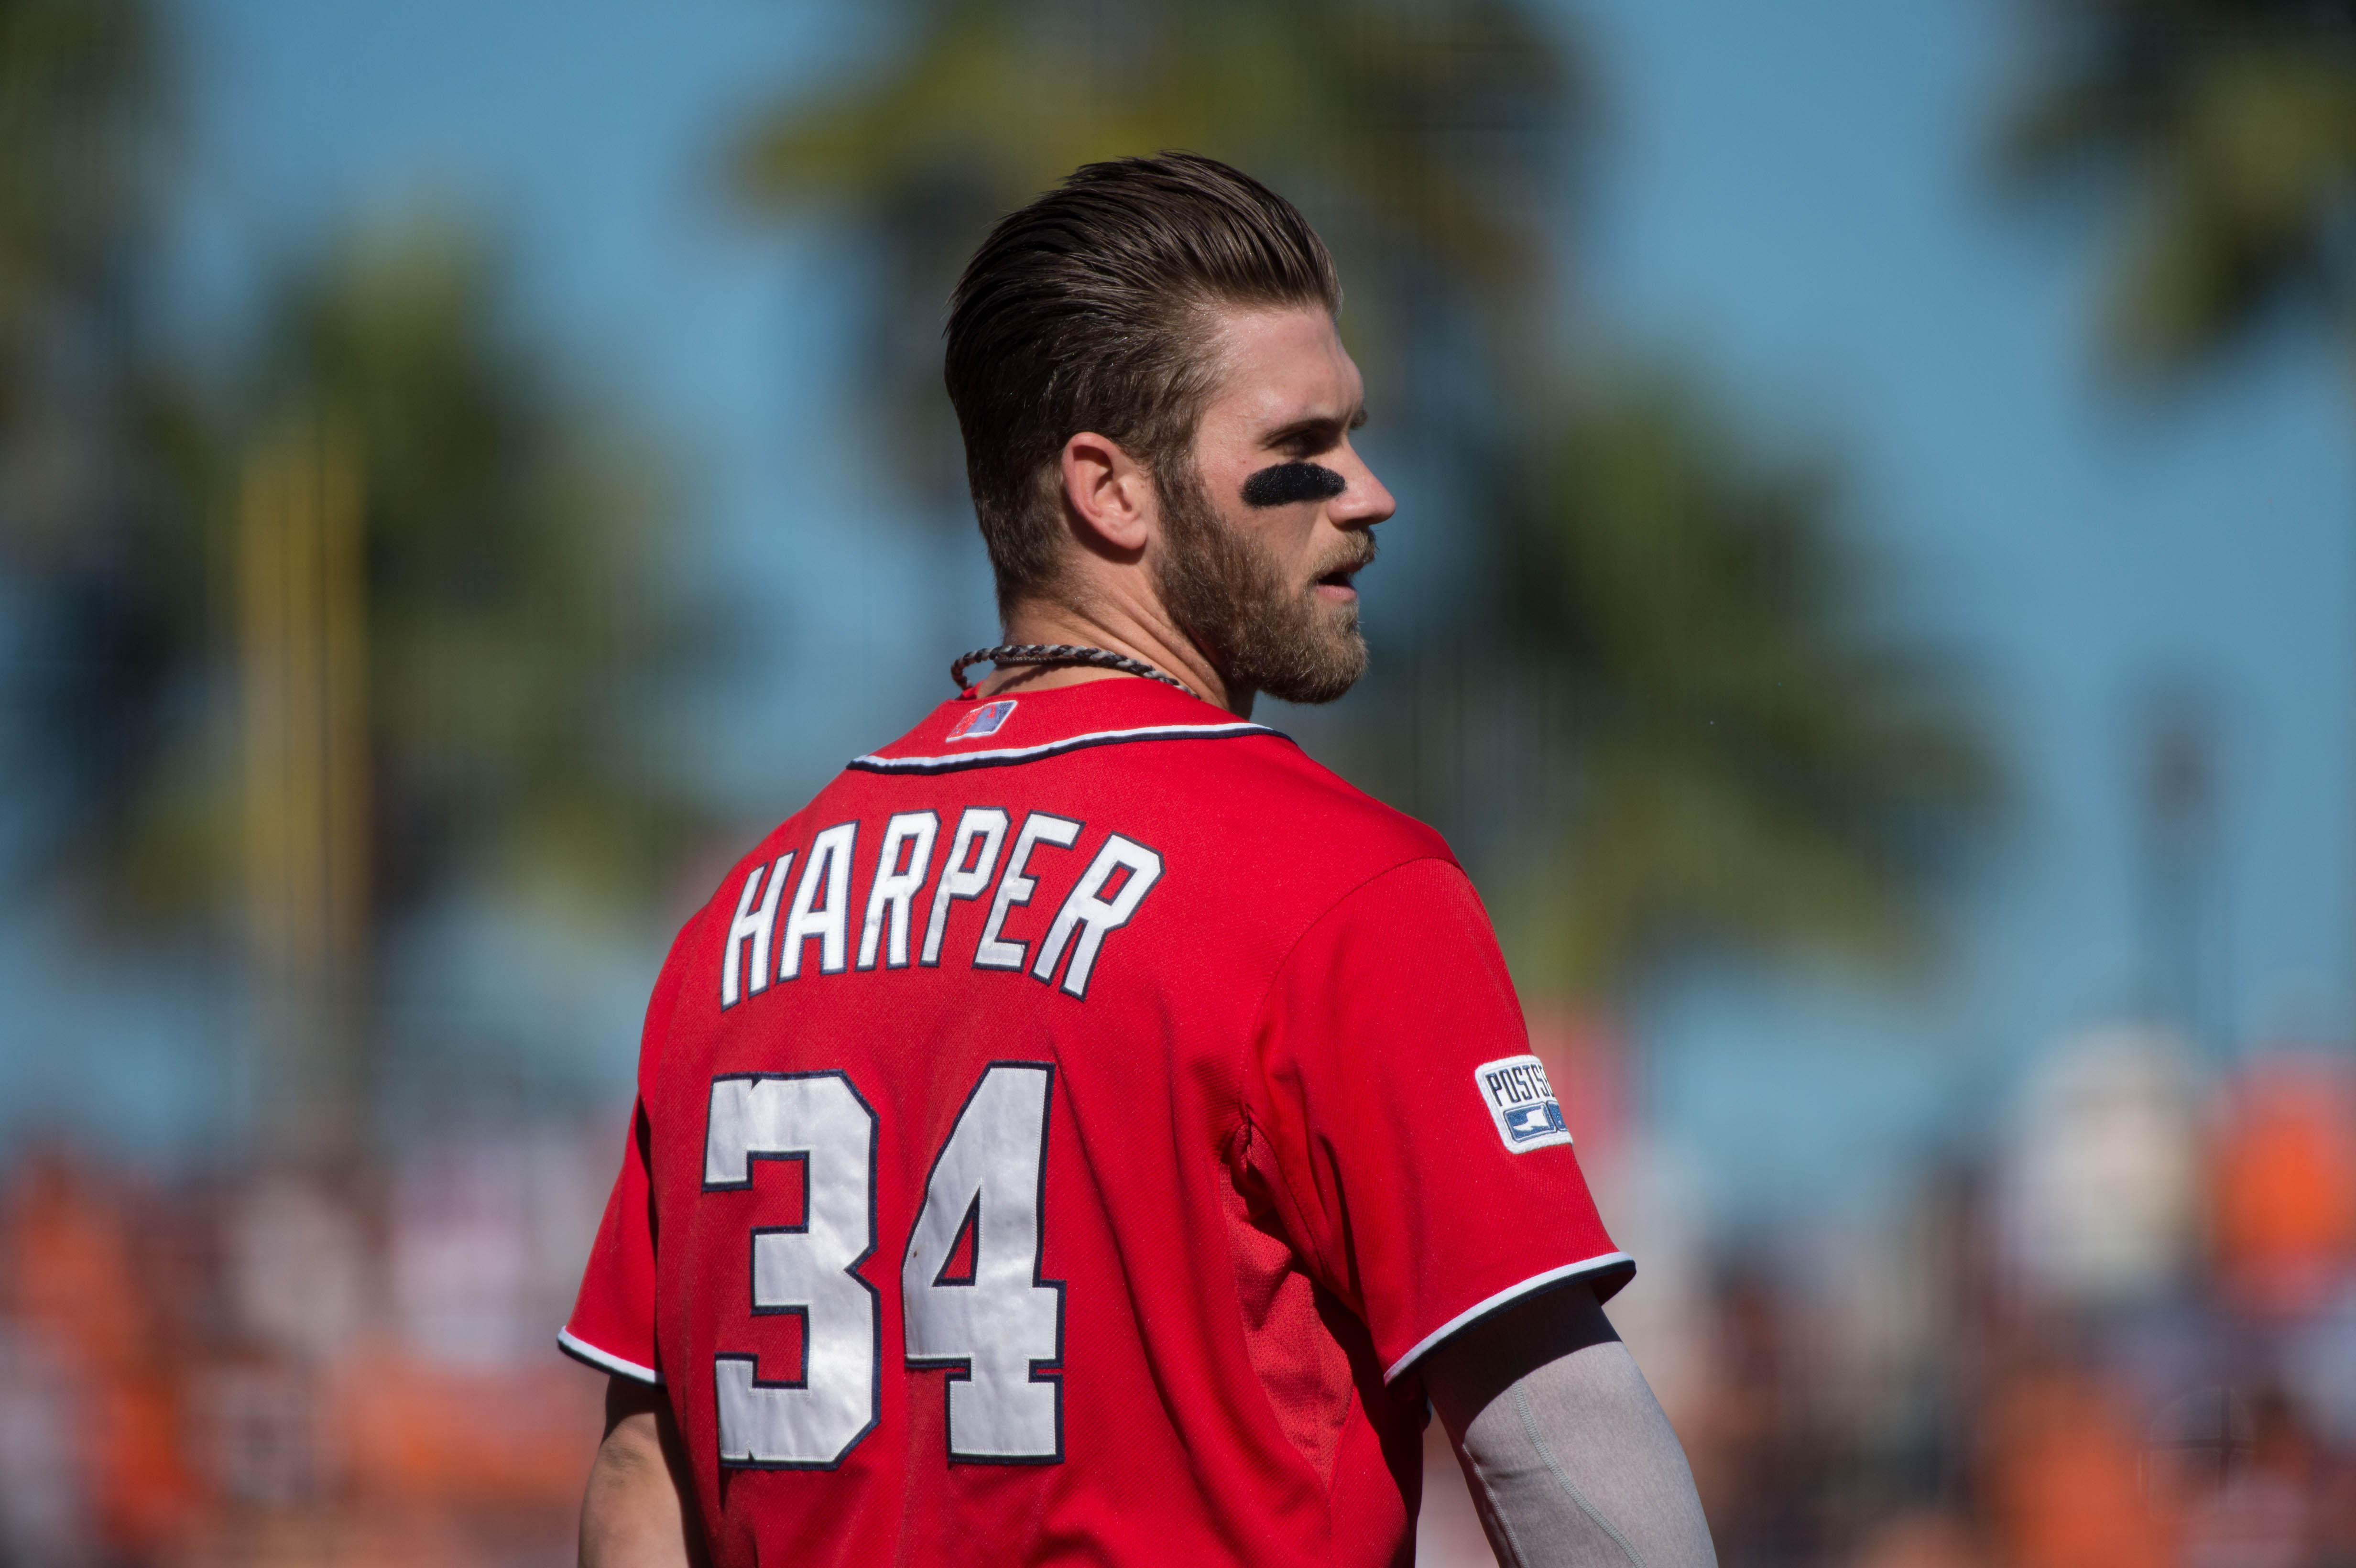 Bryce Harper Will Not Participate In 2015 Home Run Derby